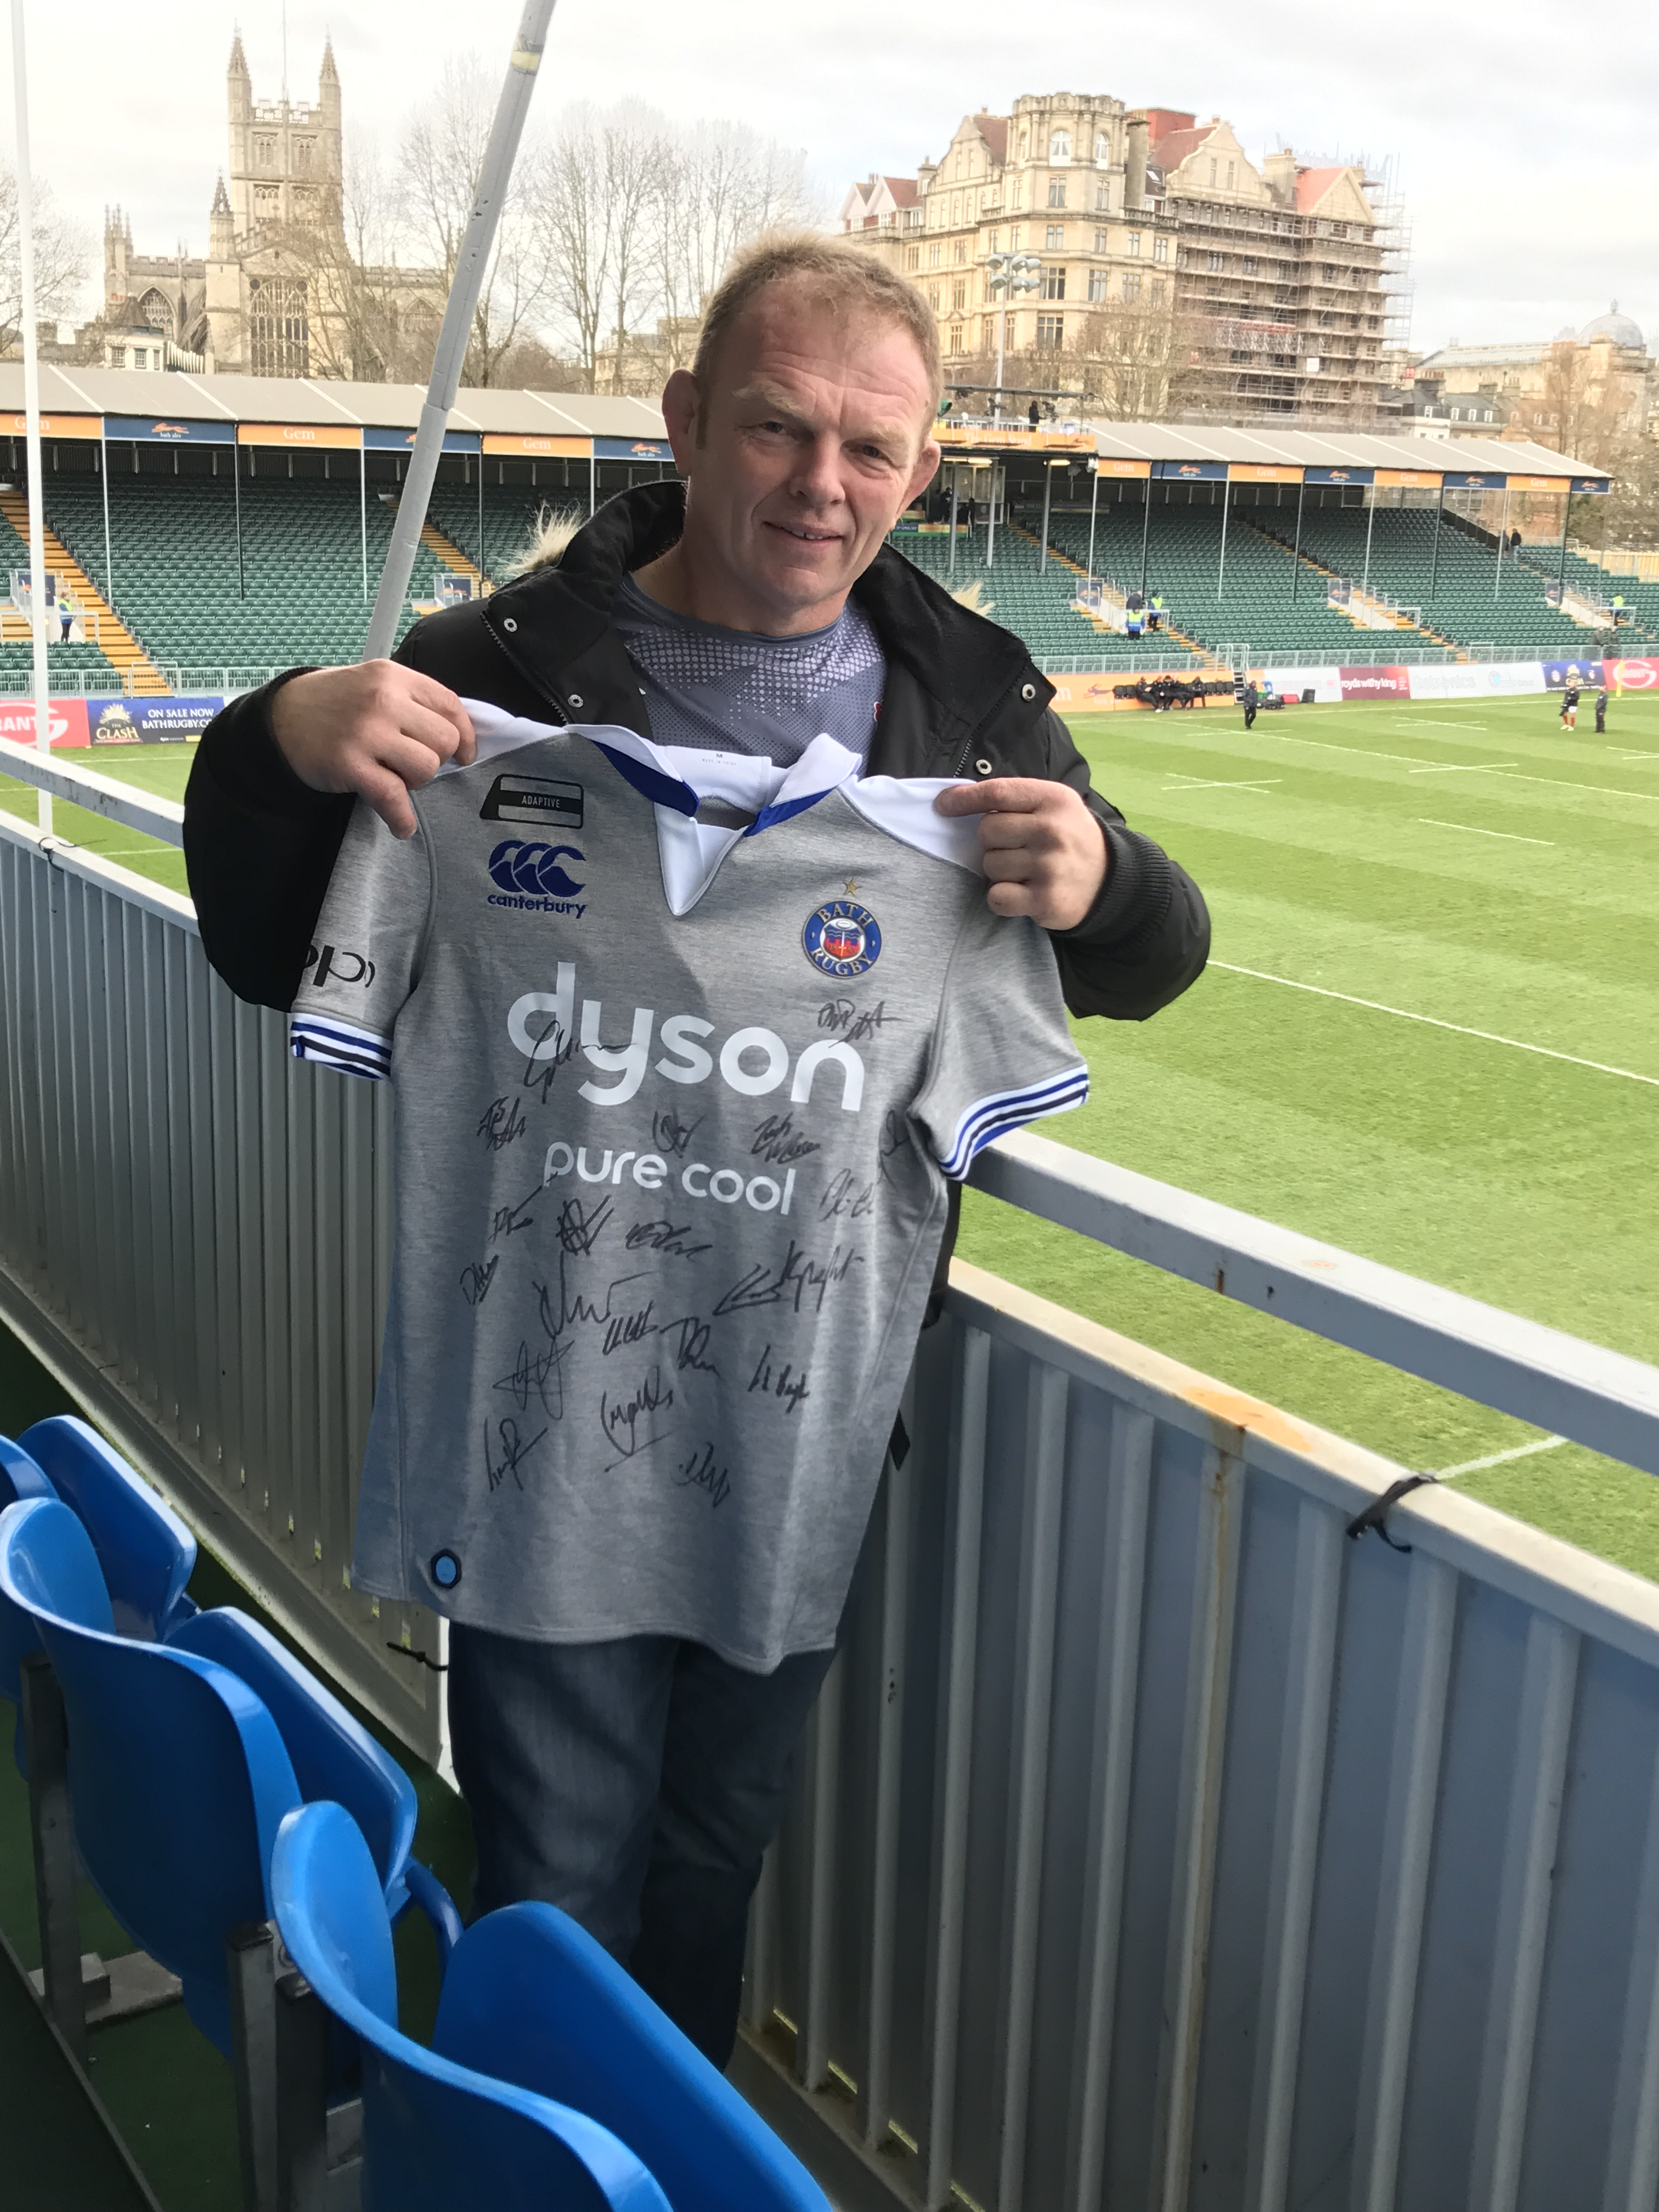 Competition winner joins Grant UK to cheer on Bath Rugby!